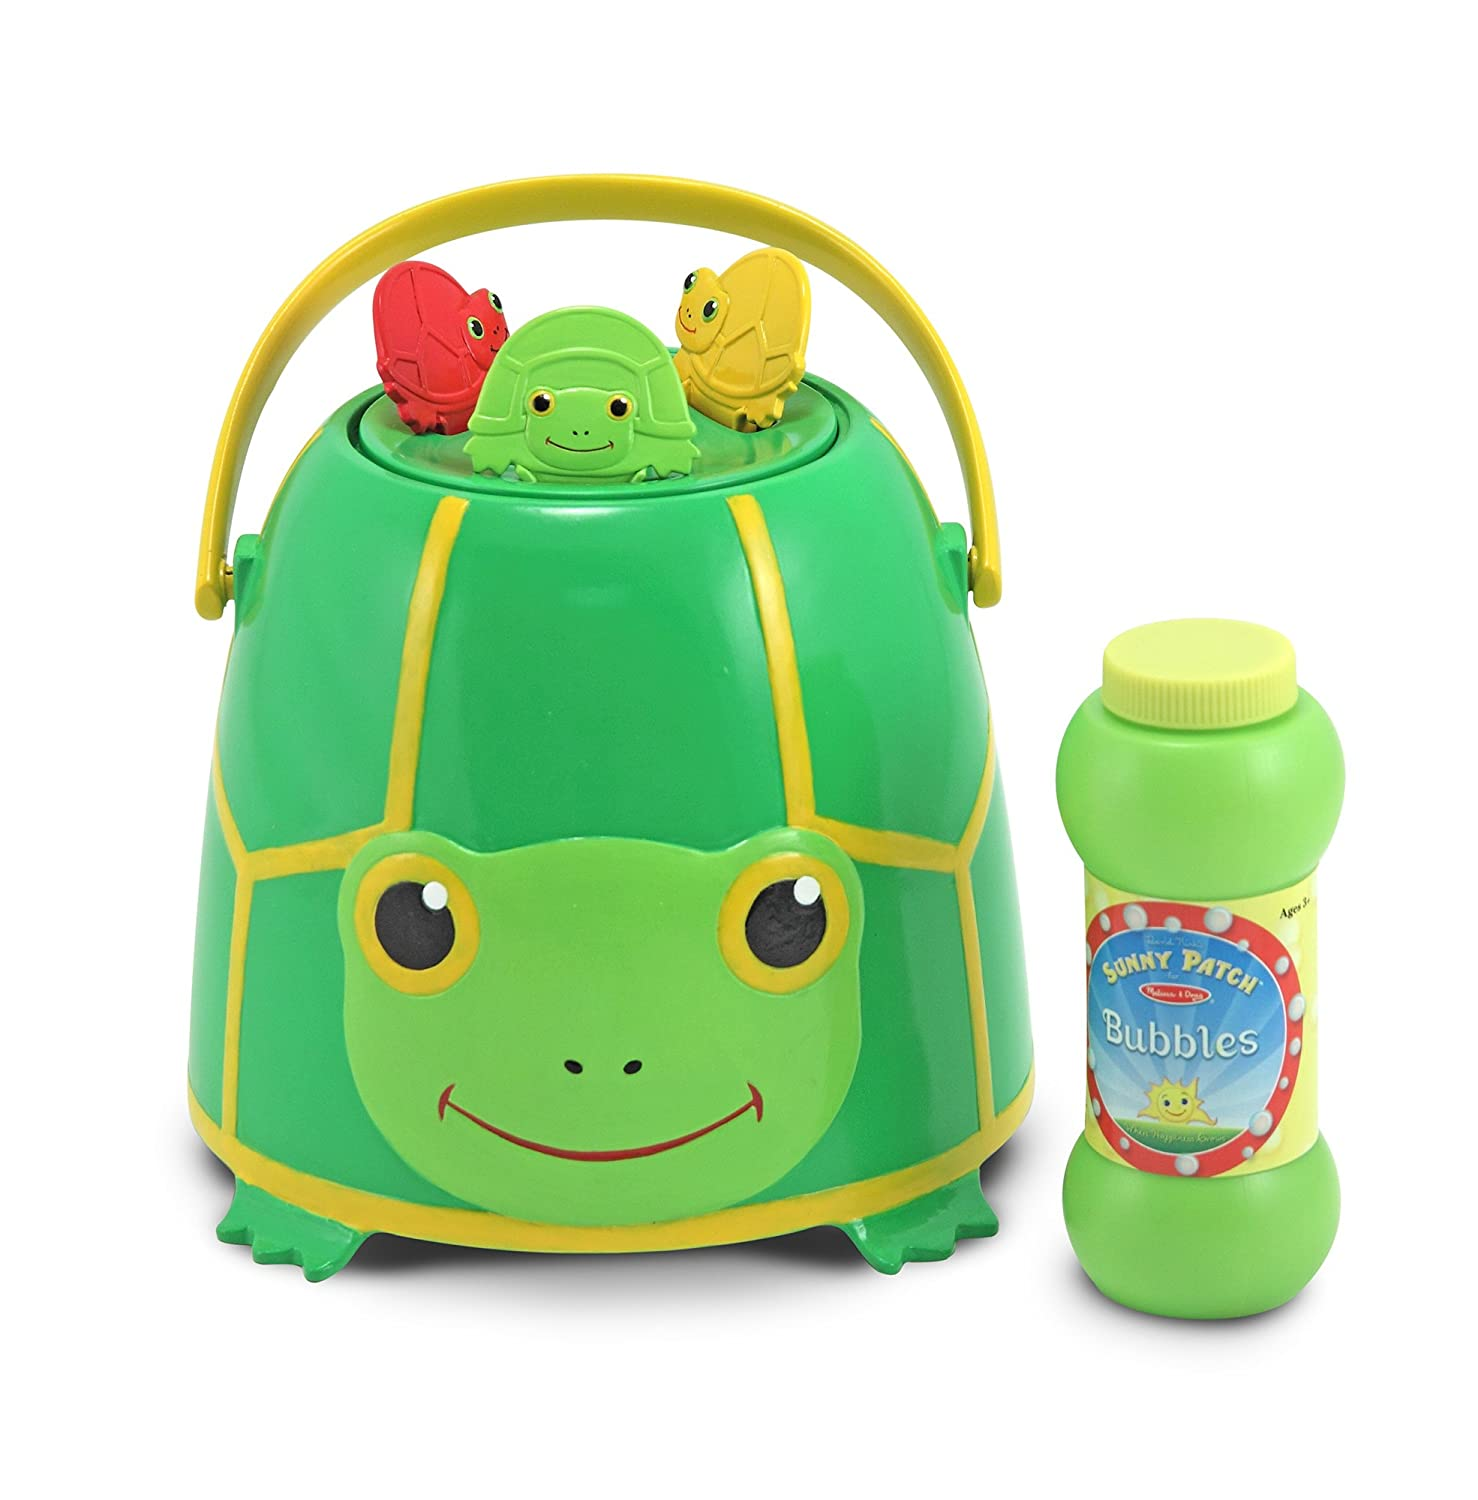 Melissa Doug Sunny Patch Tootle Turtle Bubble Blowing Bucket Set With 3 Bubble Wands